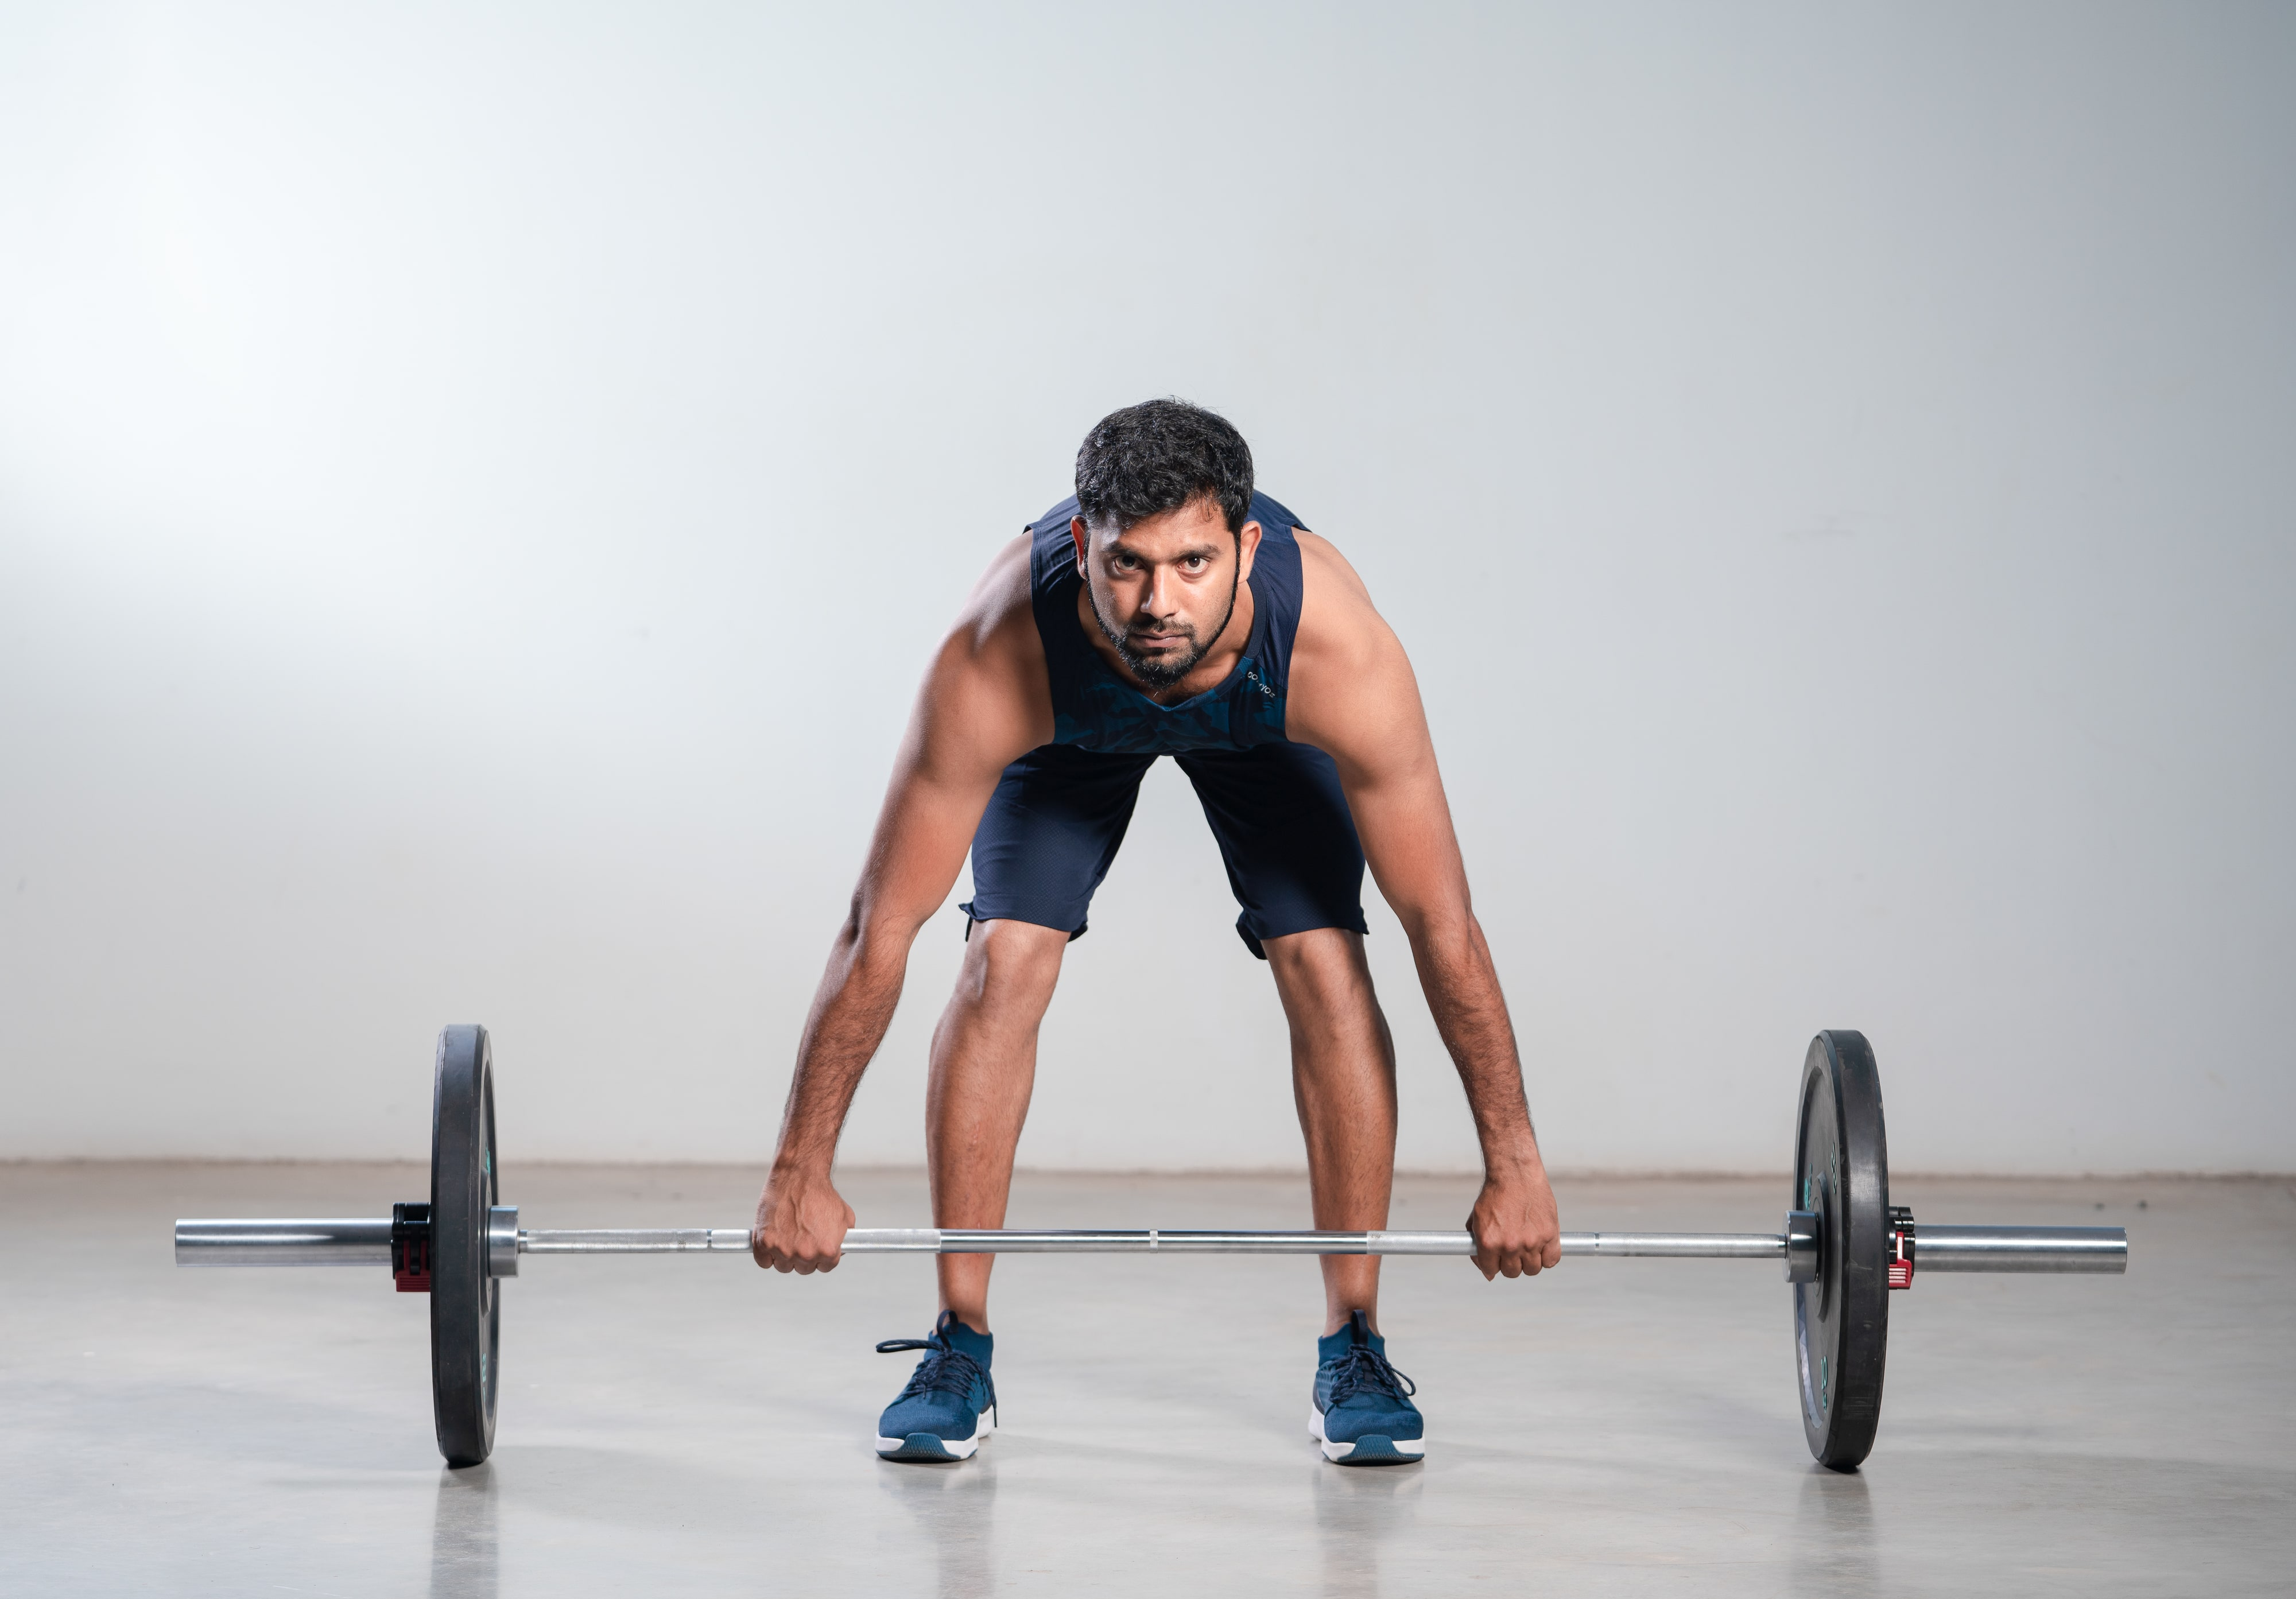 How to choose the right Olympic Barbell - Buying guide